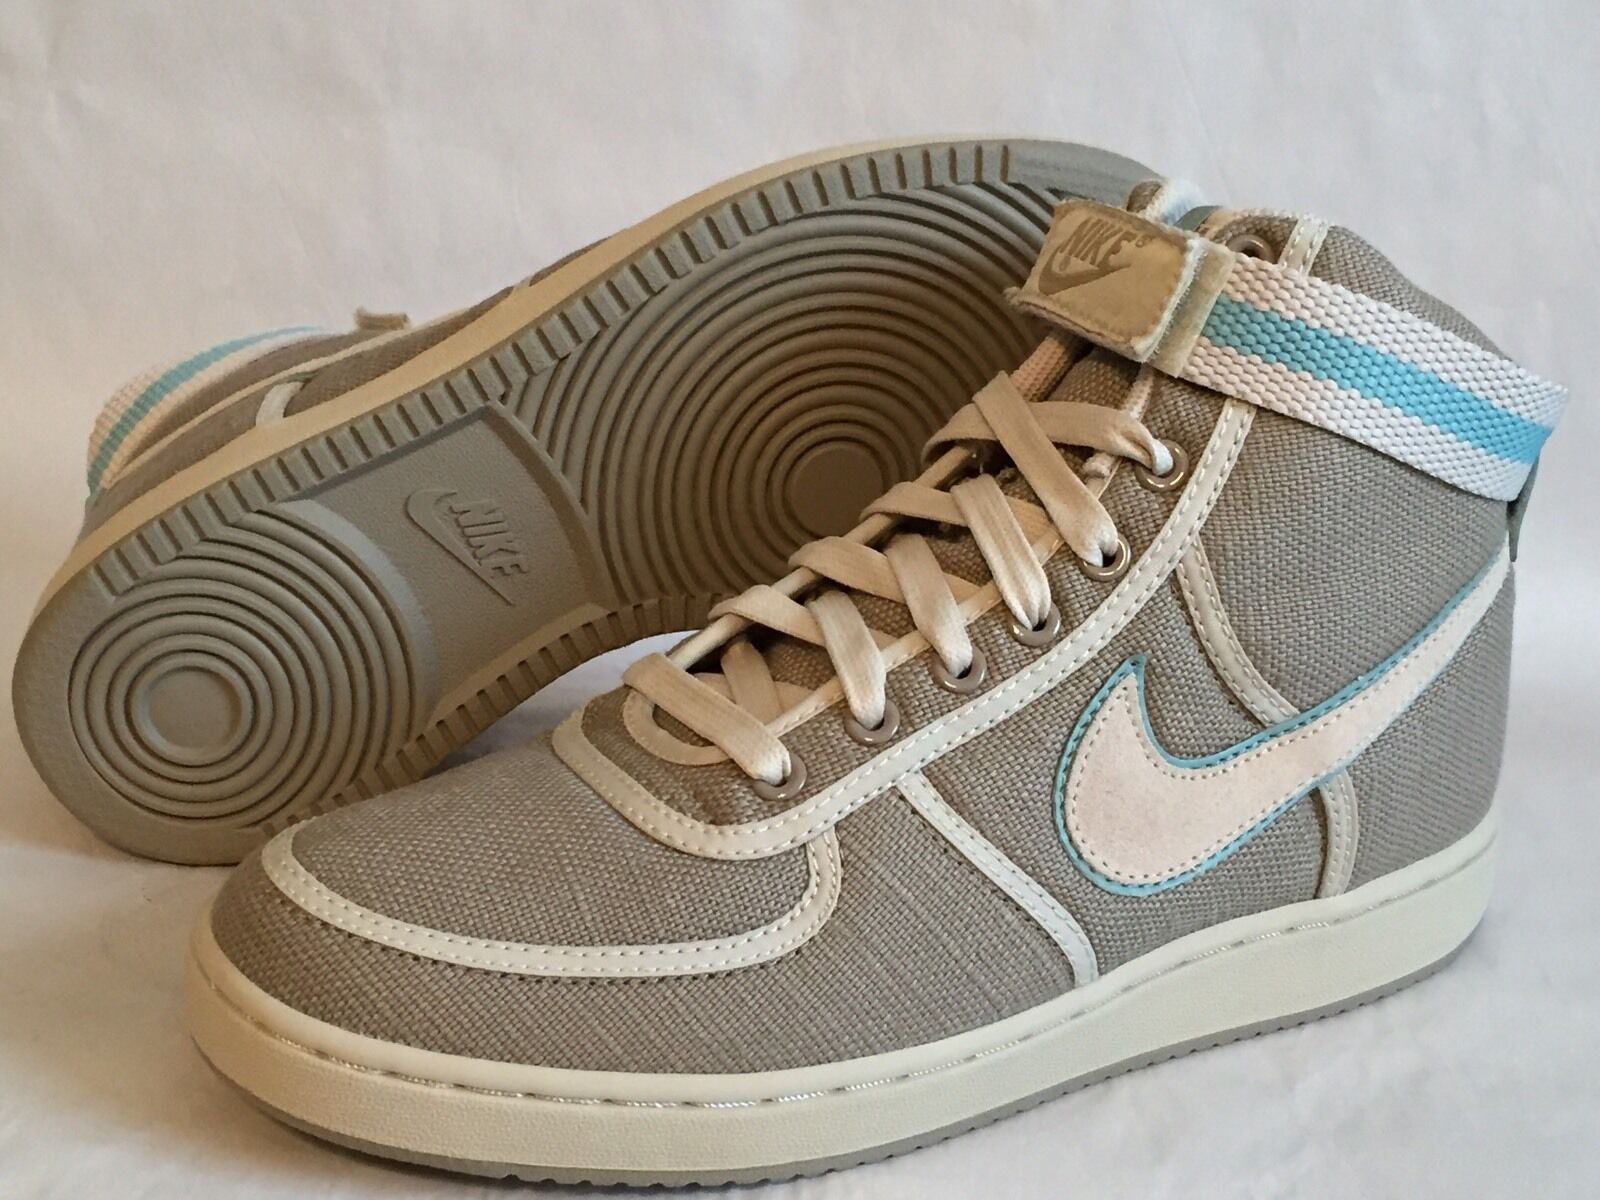 NIKE WOMEN'S VANDAL HIGH CANVAS Shoes 310067-211 Size 9.5 -  NEW!